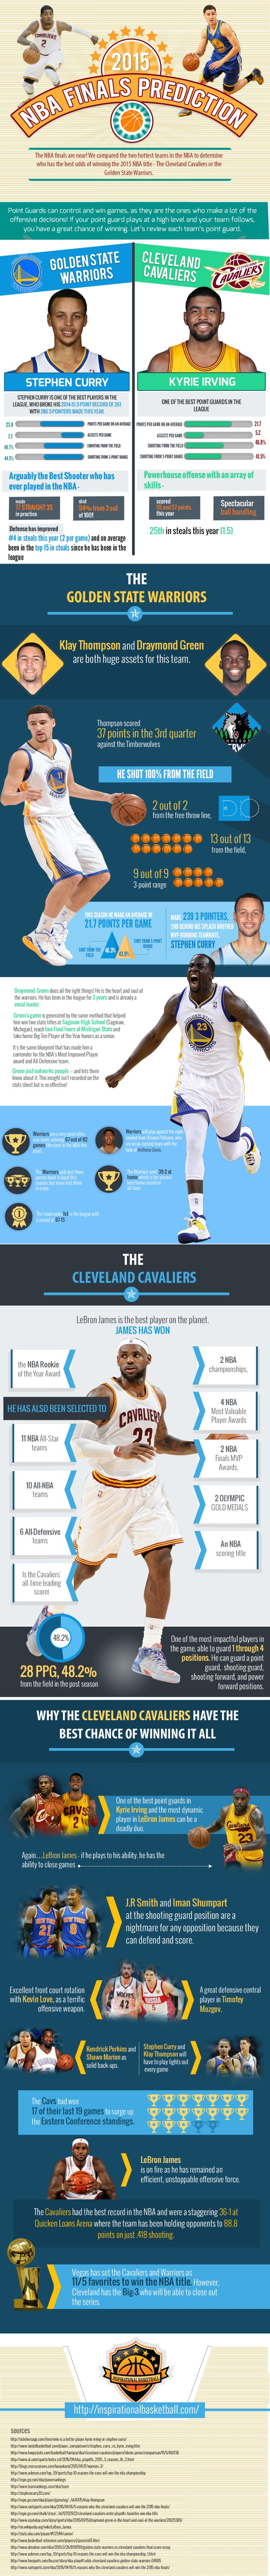 2015 nba playoffs finals predictions infographic